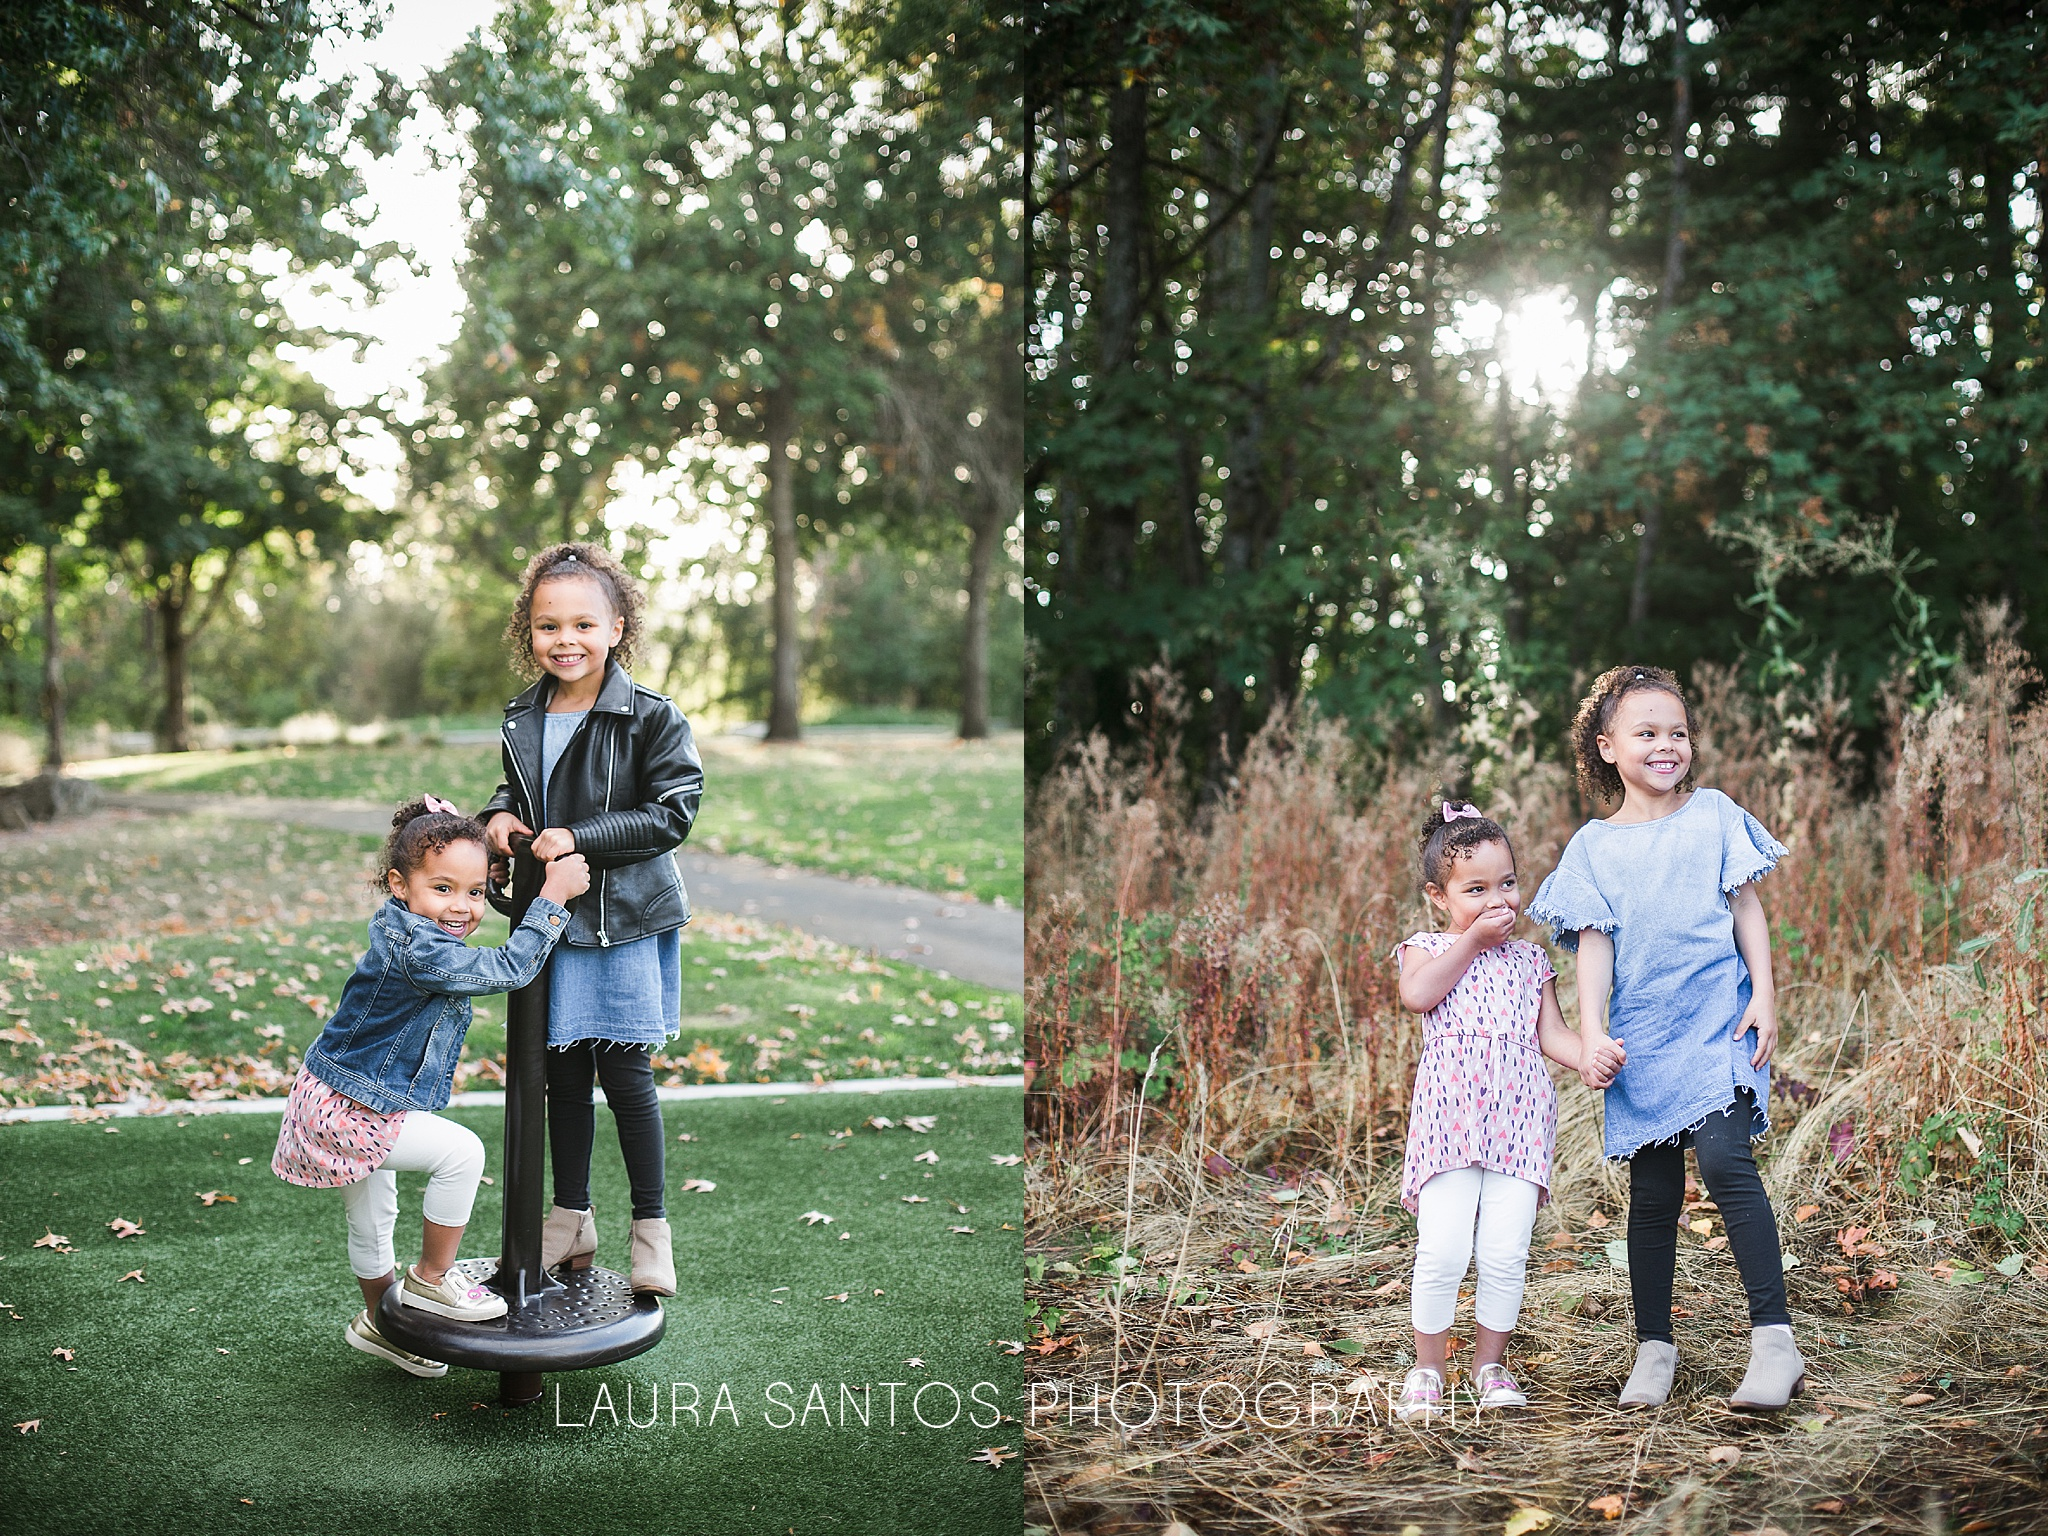 Laura Santos Photography Portland Oregon Family Photographer_0671.jpg